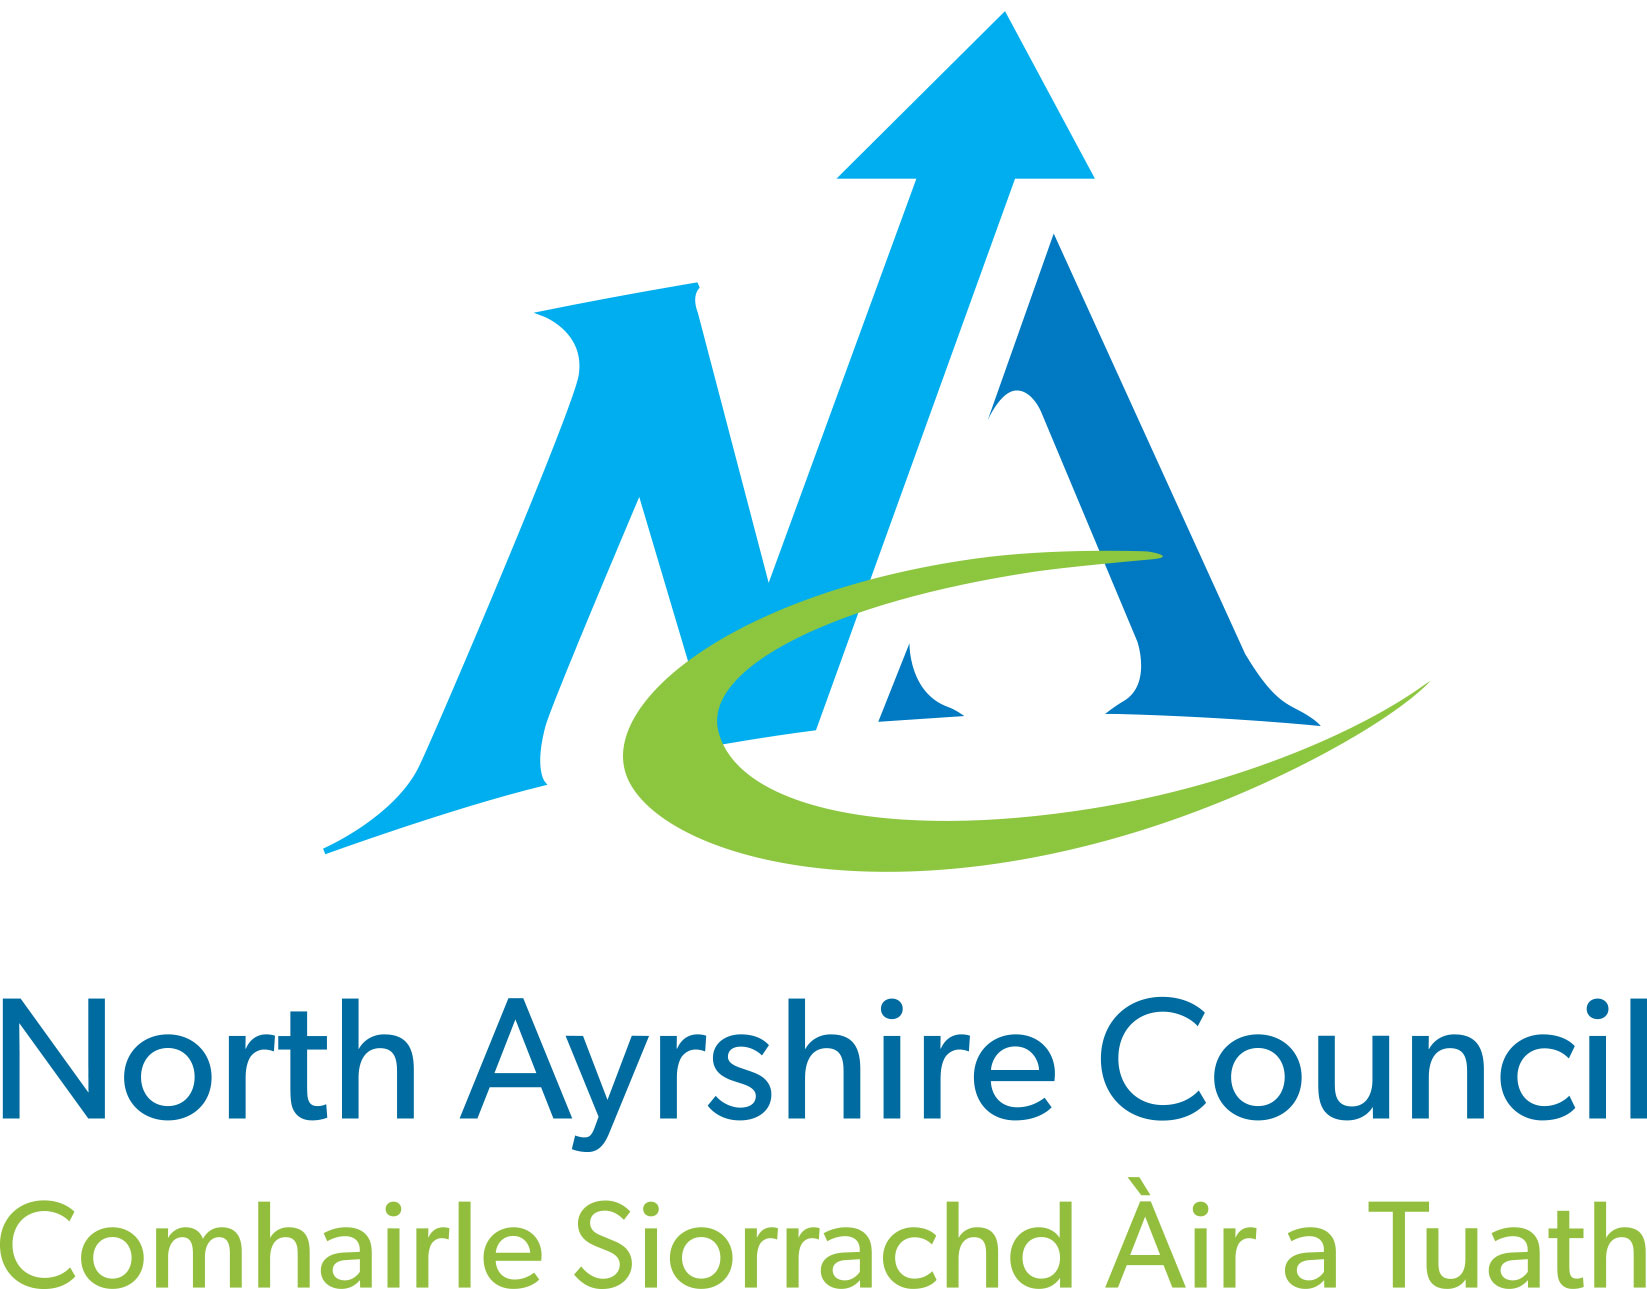 Youth groups in North Ayrshire land a share of £19,000